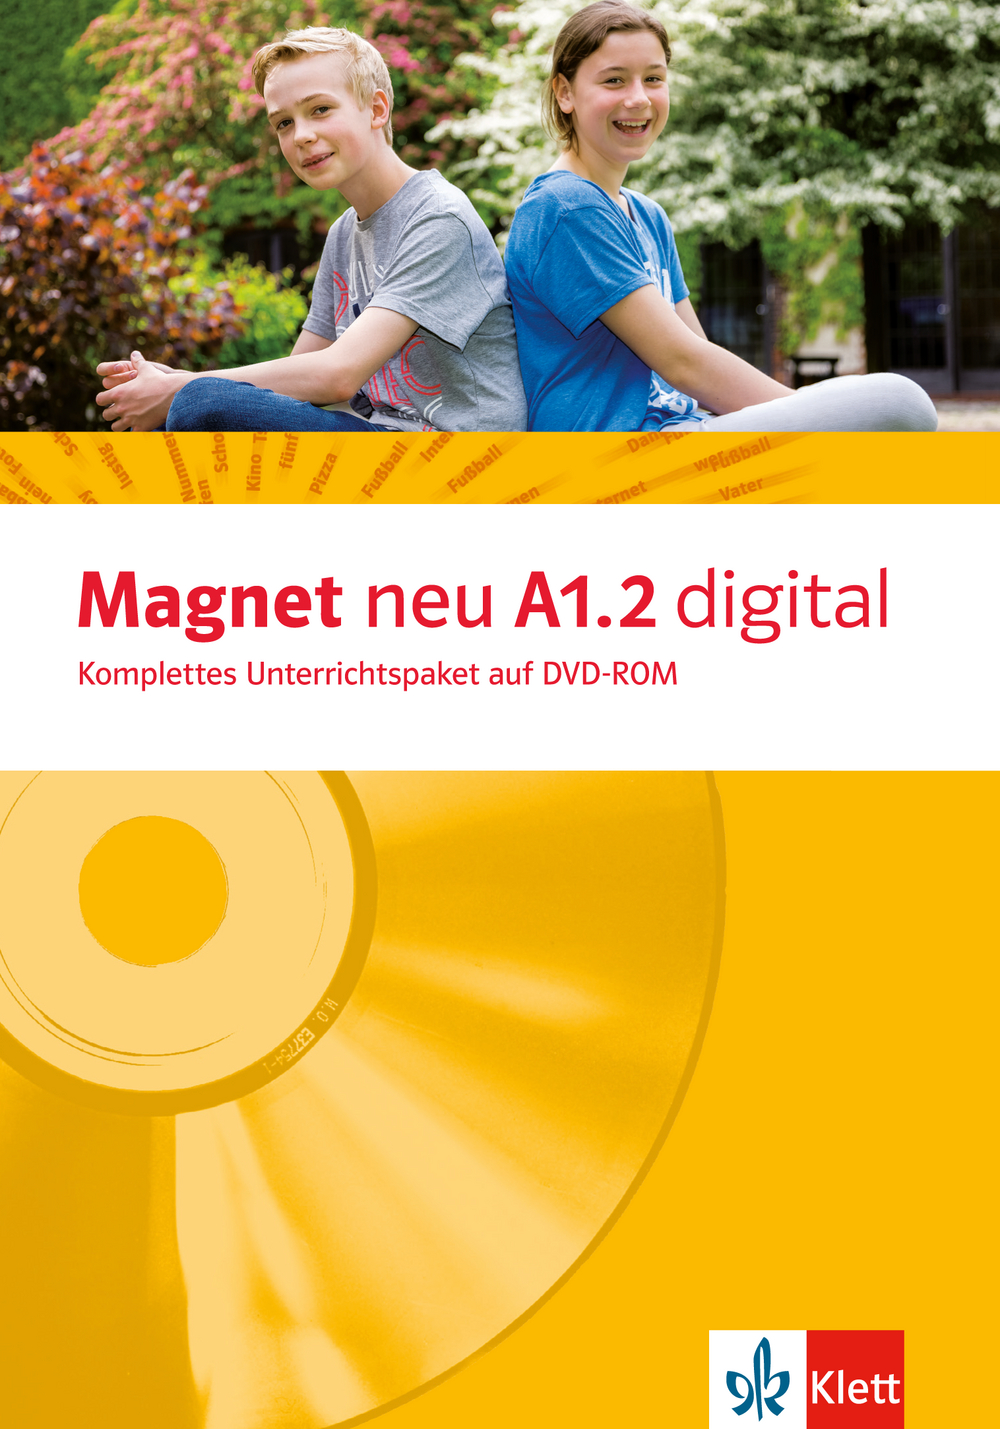 Magnet neu A1.2 digital